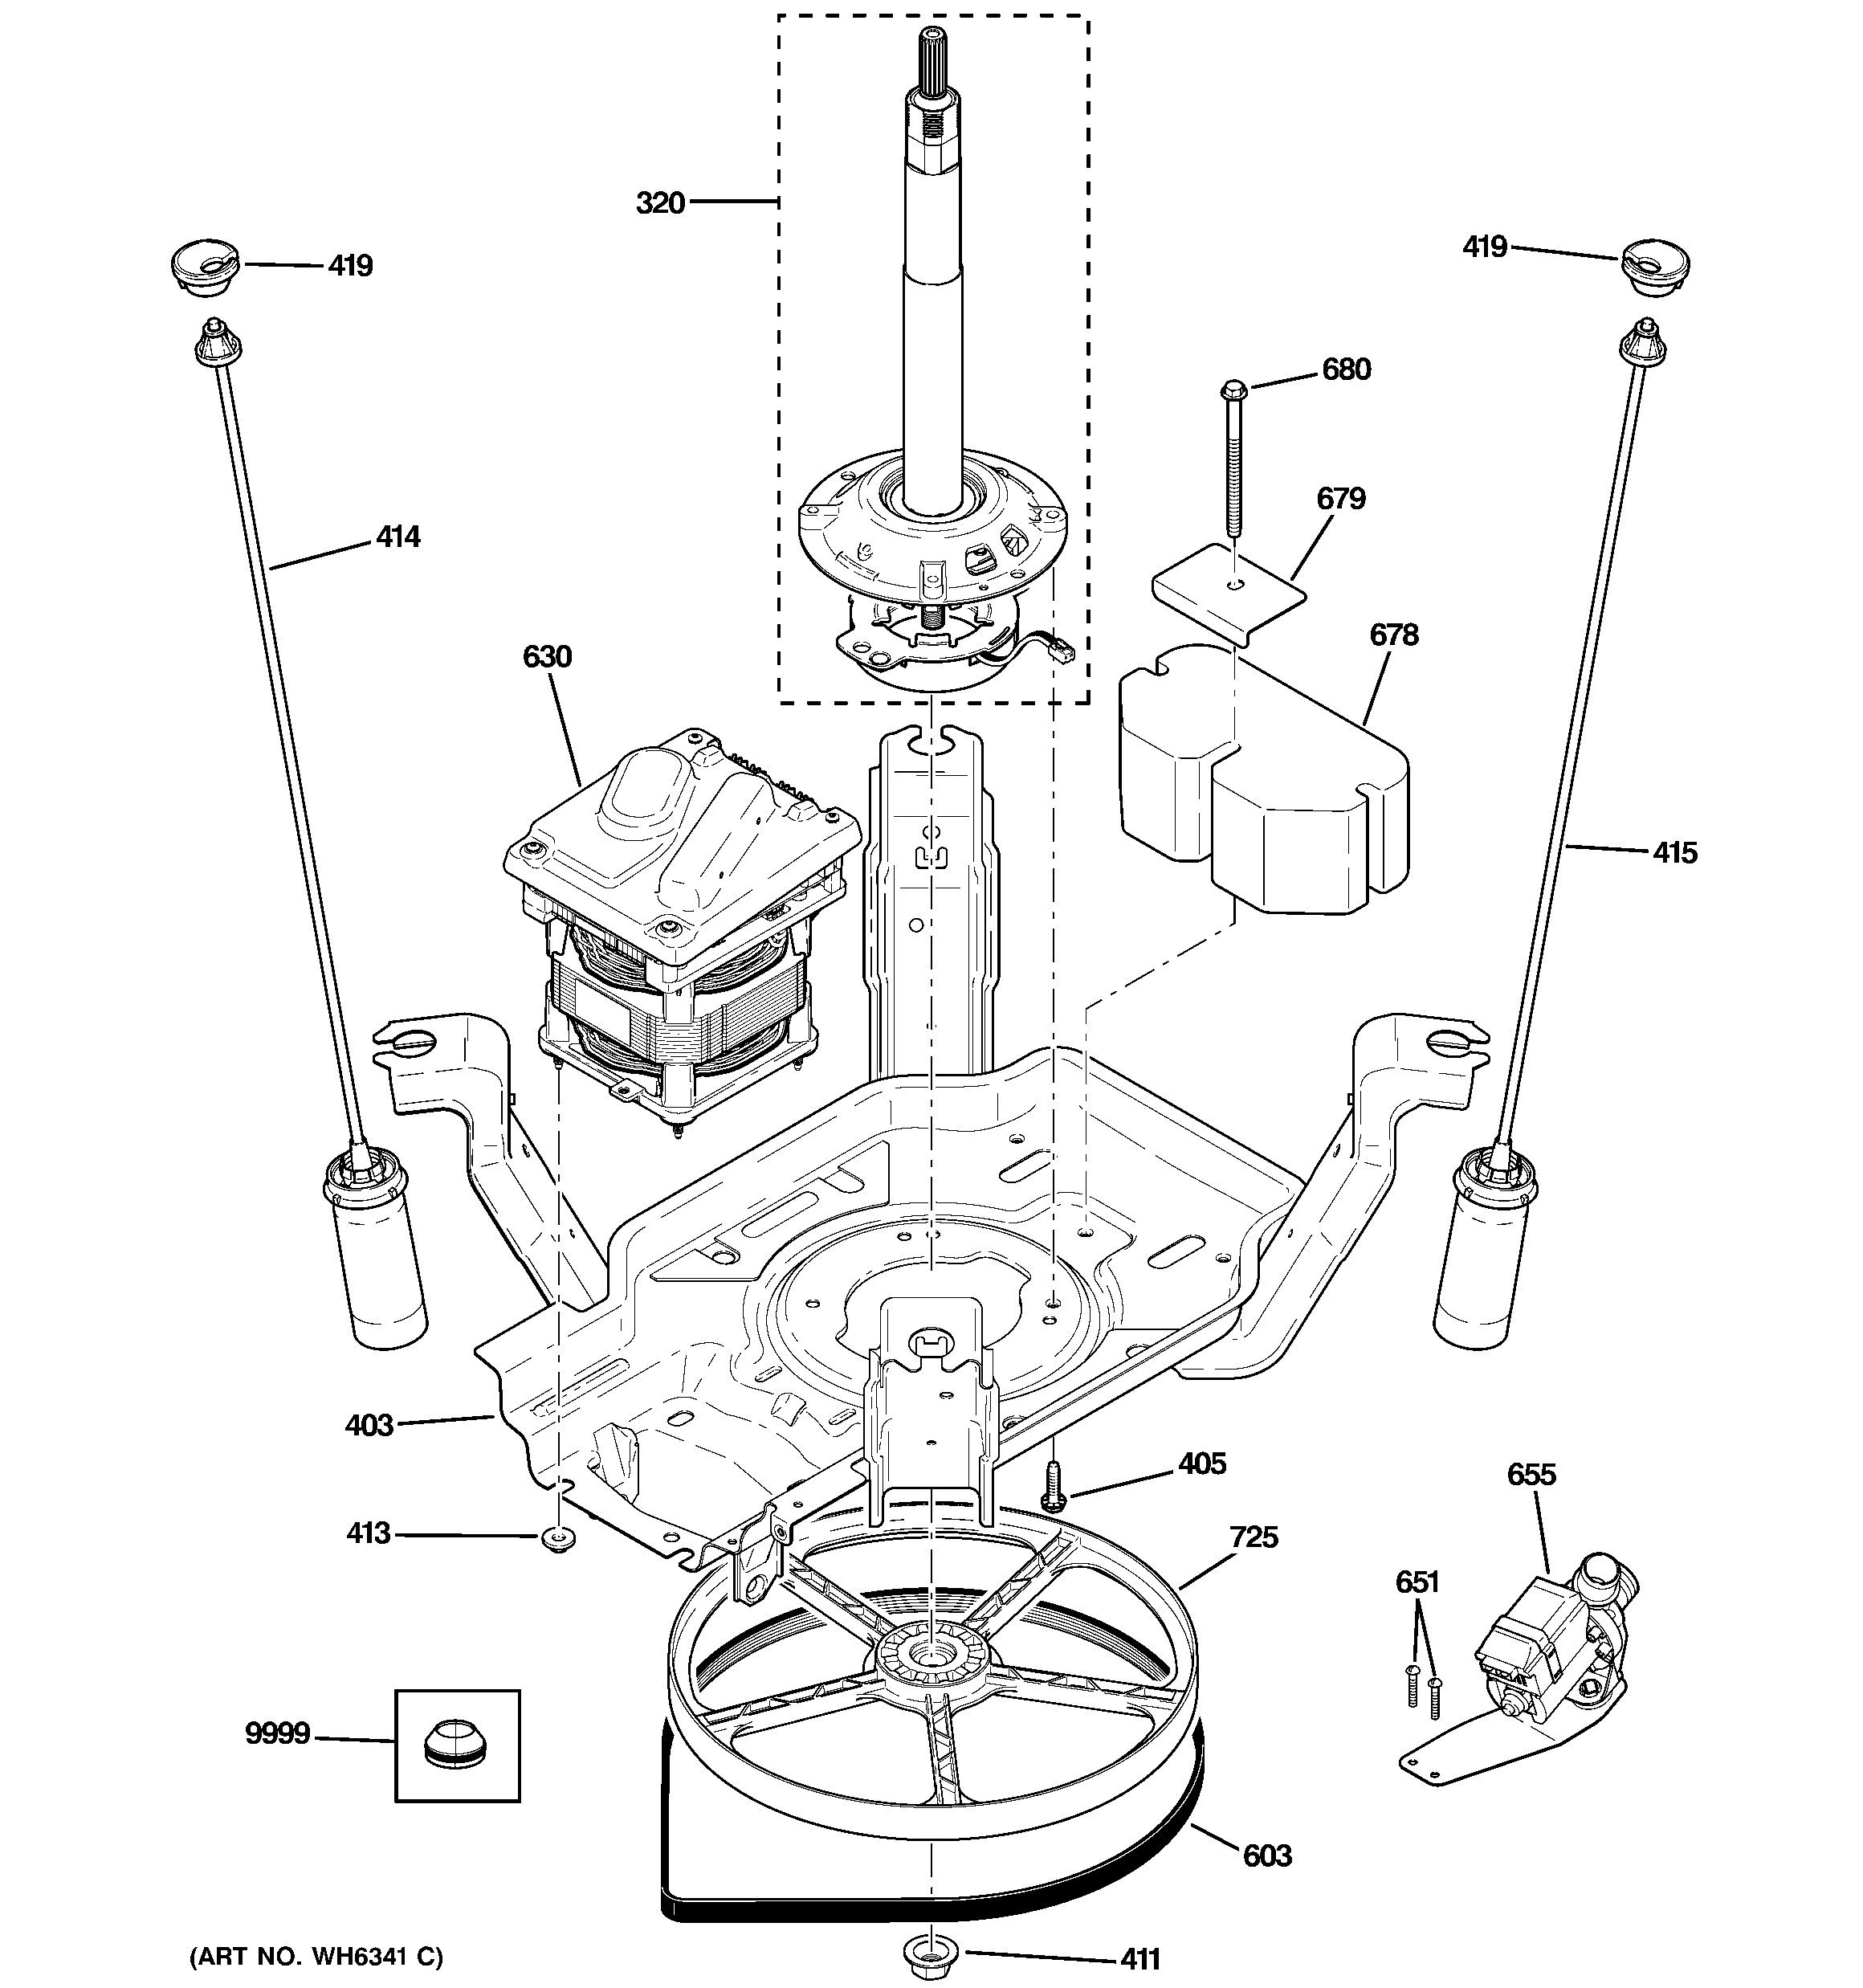 50 Hotpoint Dryer Parts Diagram Ta8s di 2020